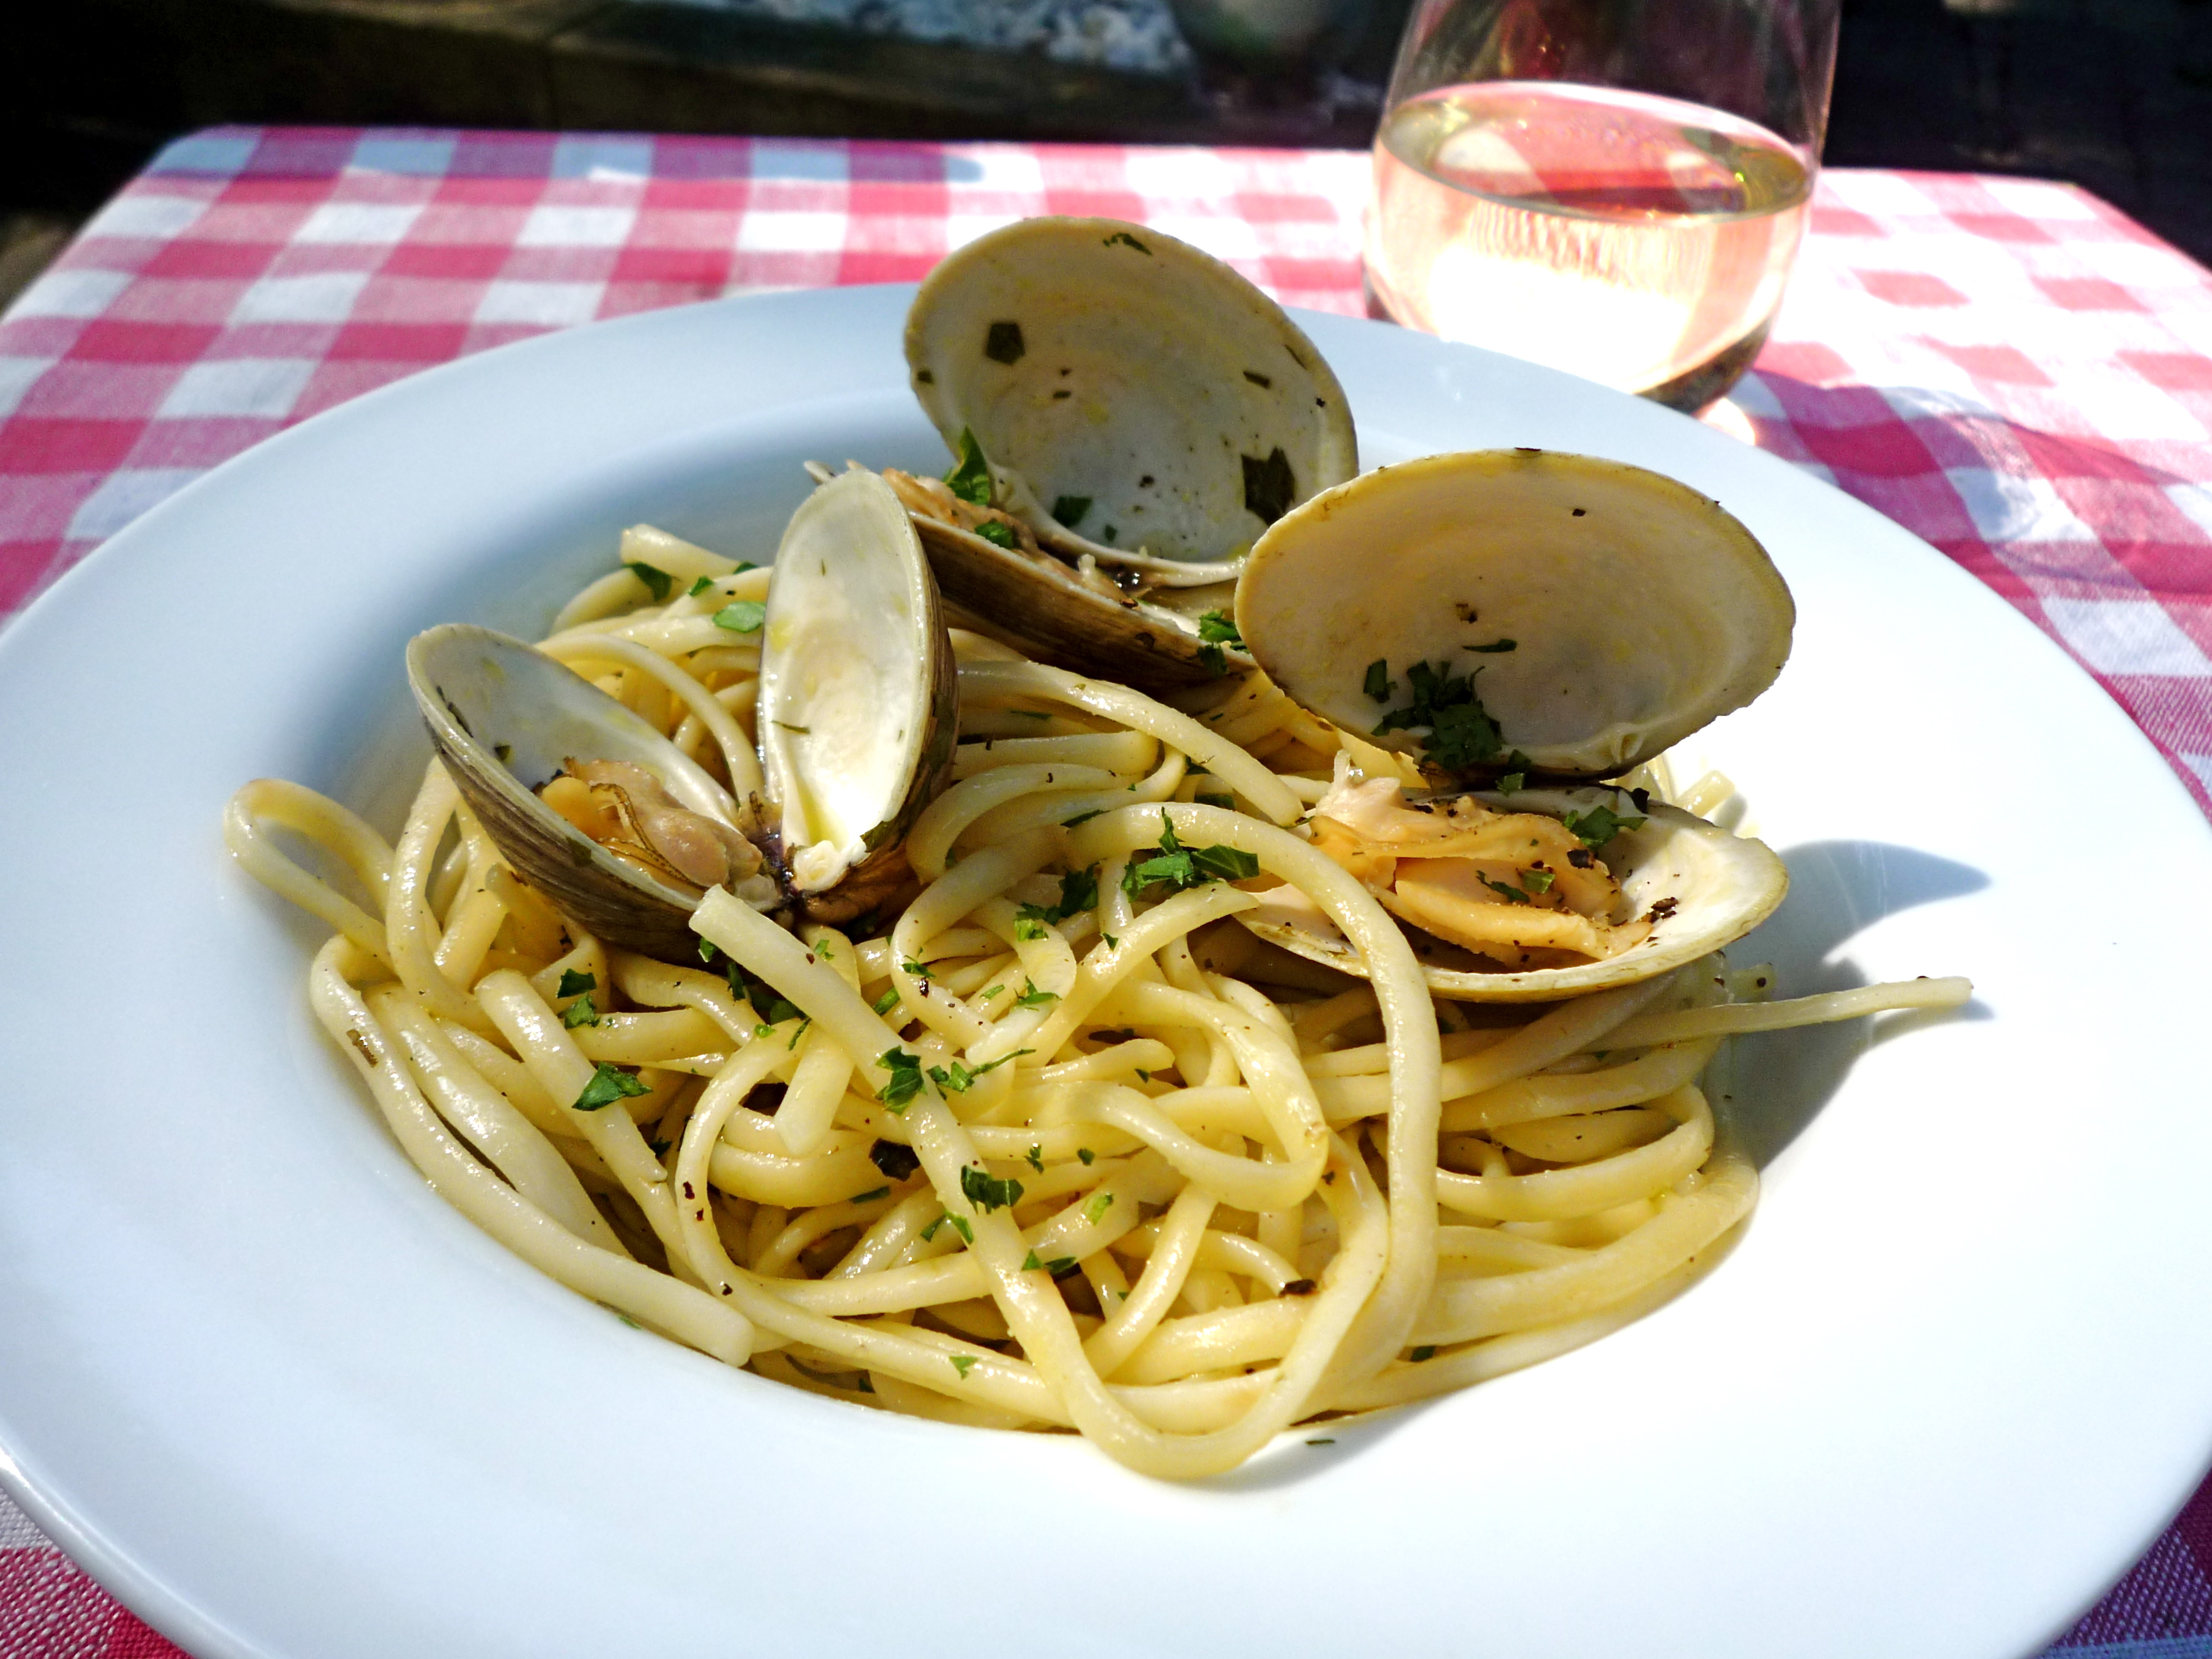 Linguine with clams + a glass of wine = the perfect meal!